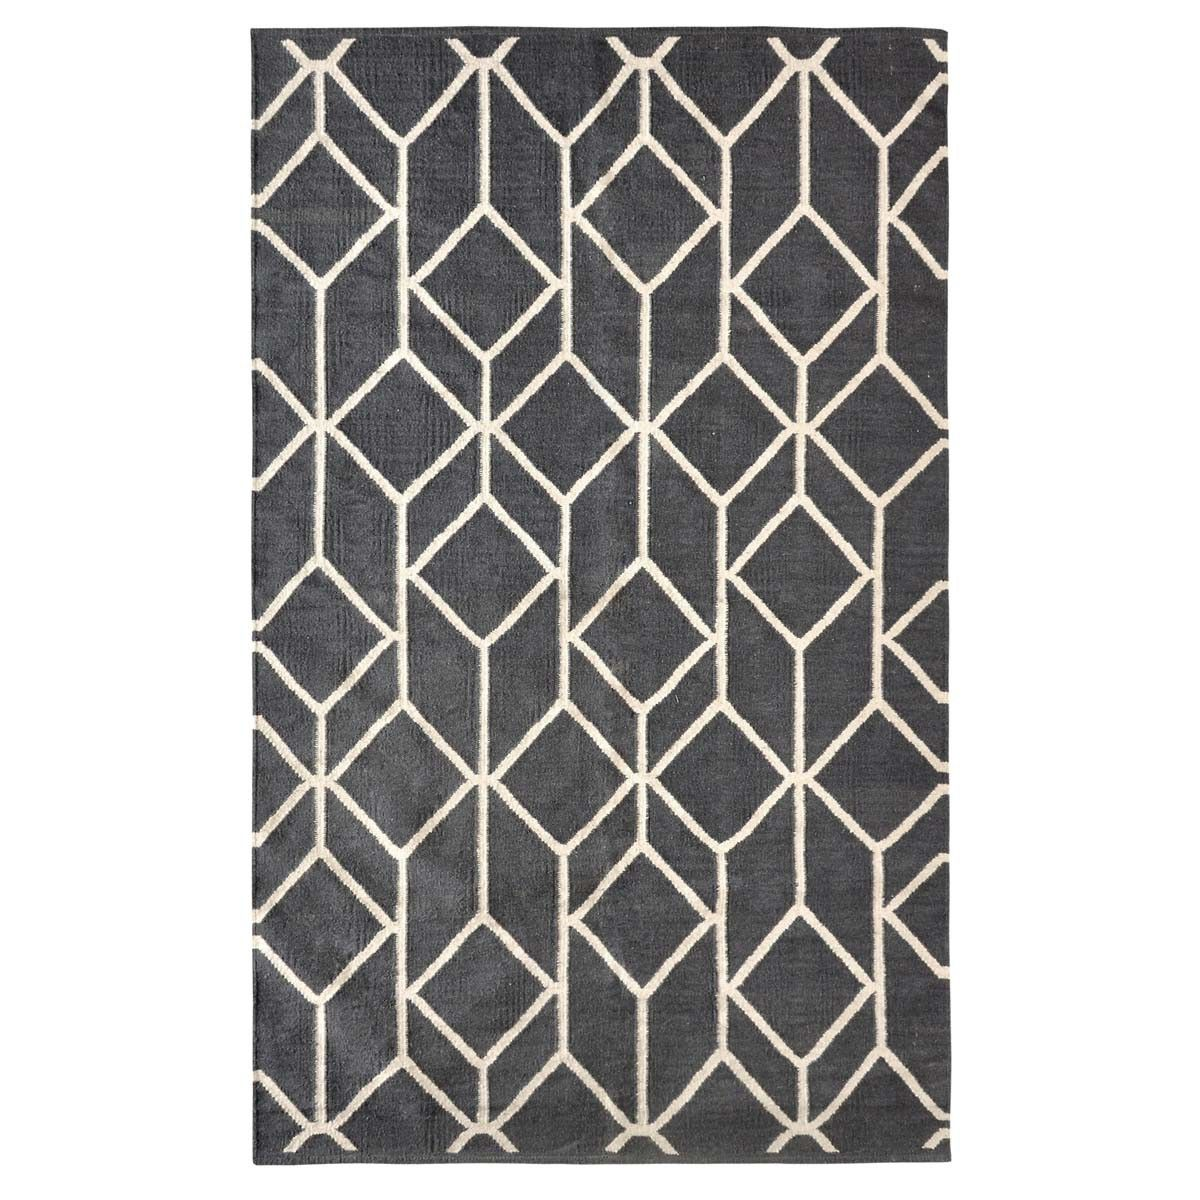 Geo Outline 5x8 Gray Rug